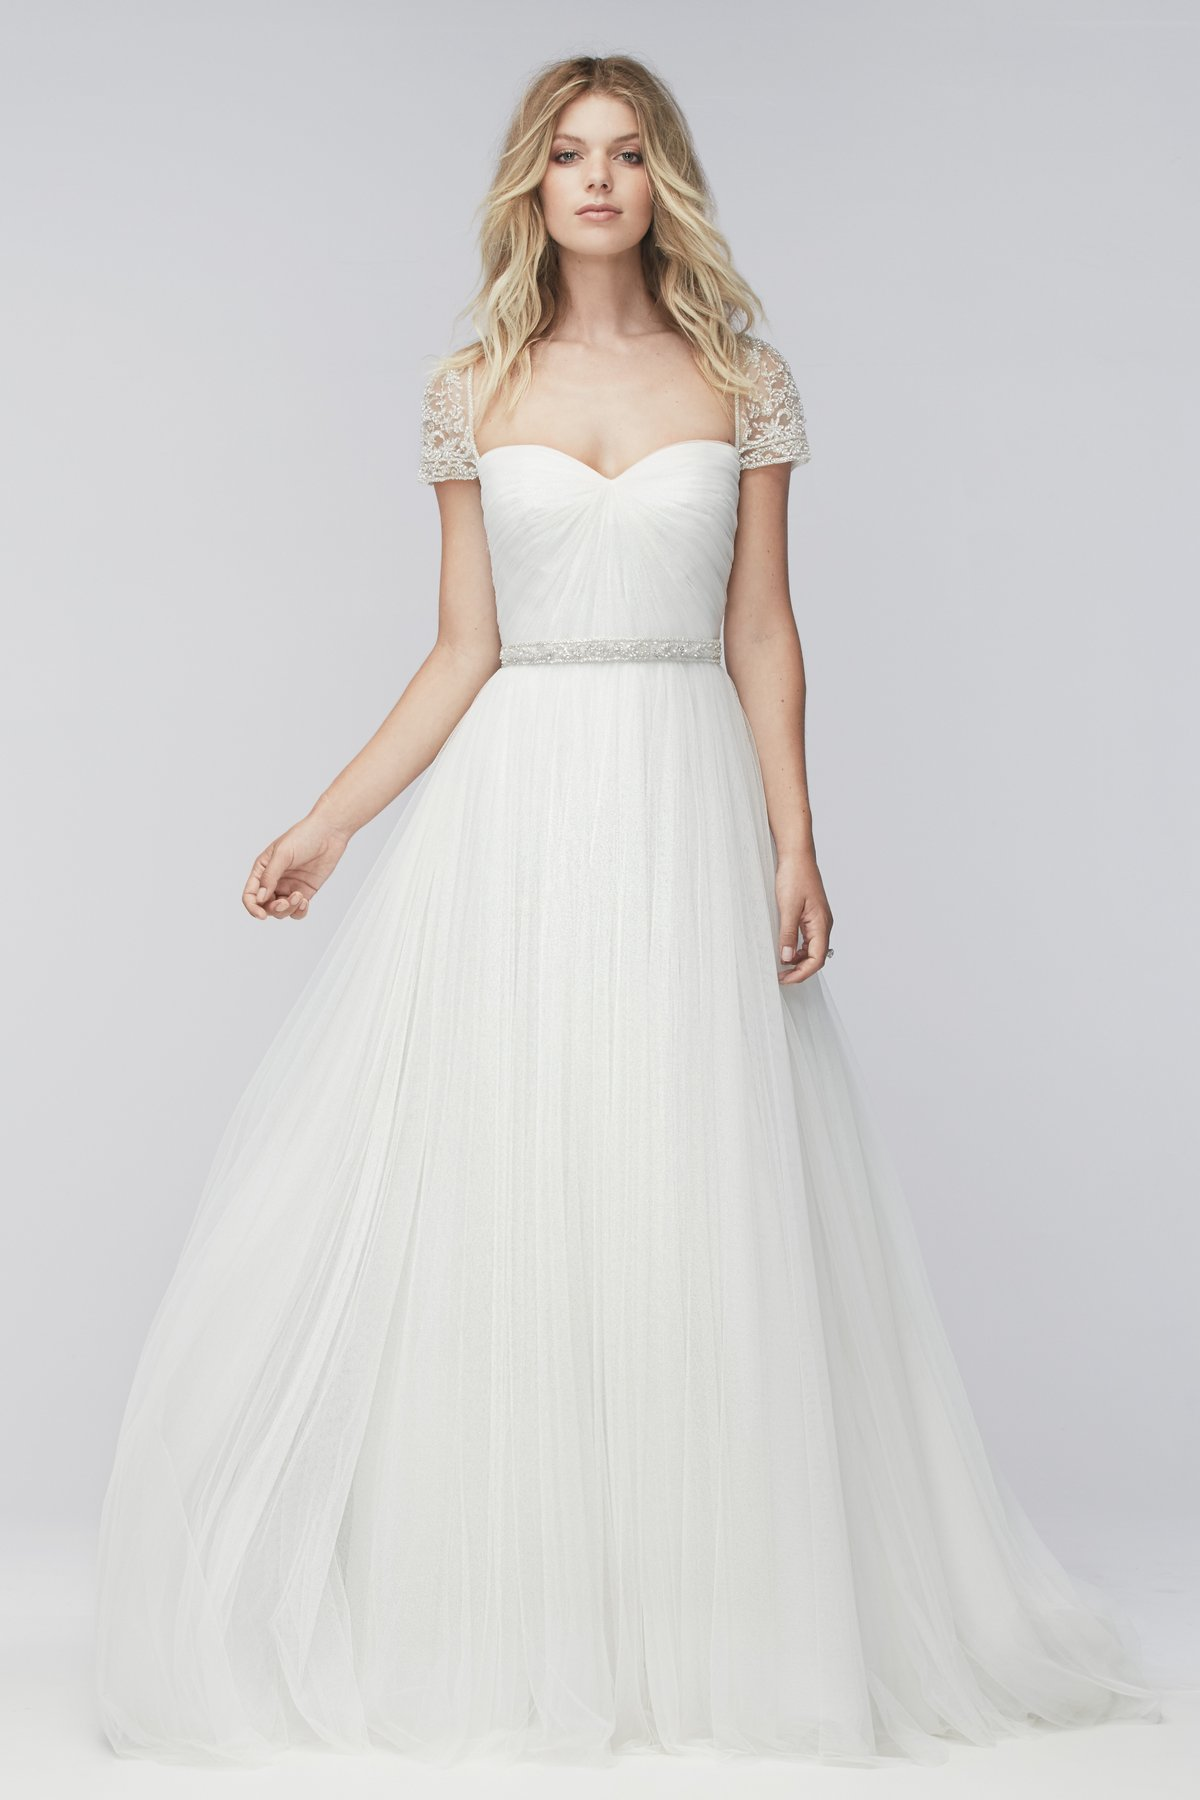 Reed by Wtoo from Lori G Derby Wedding Dress